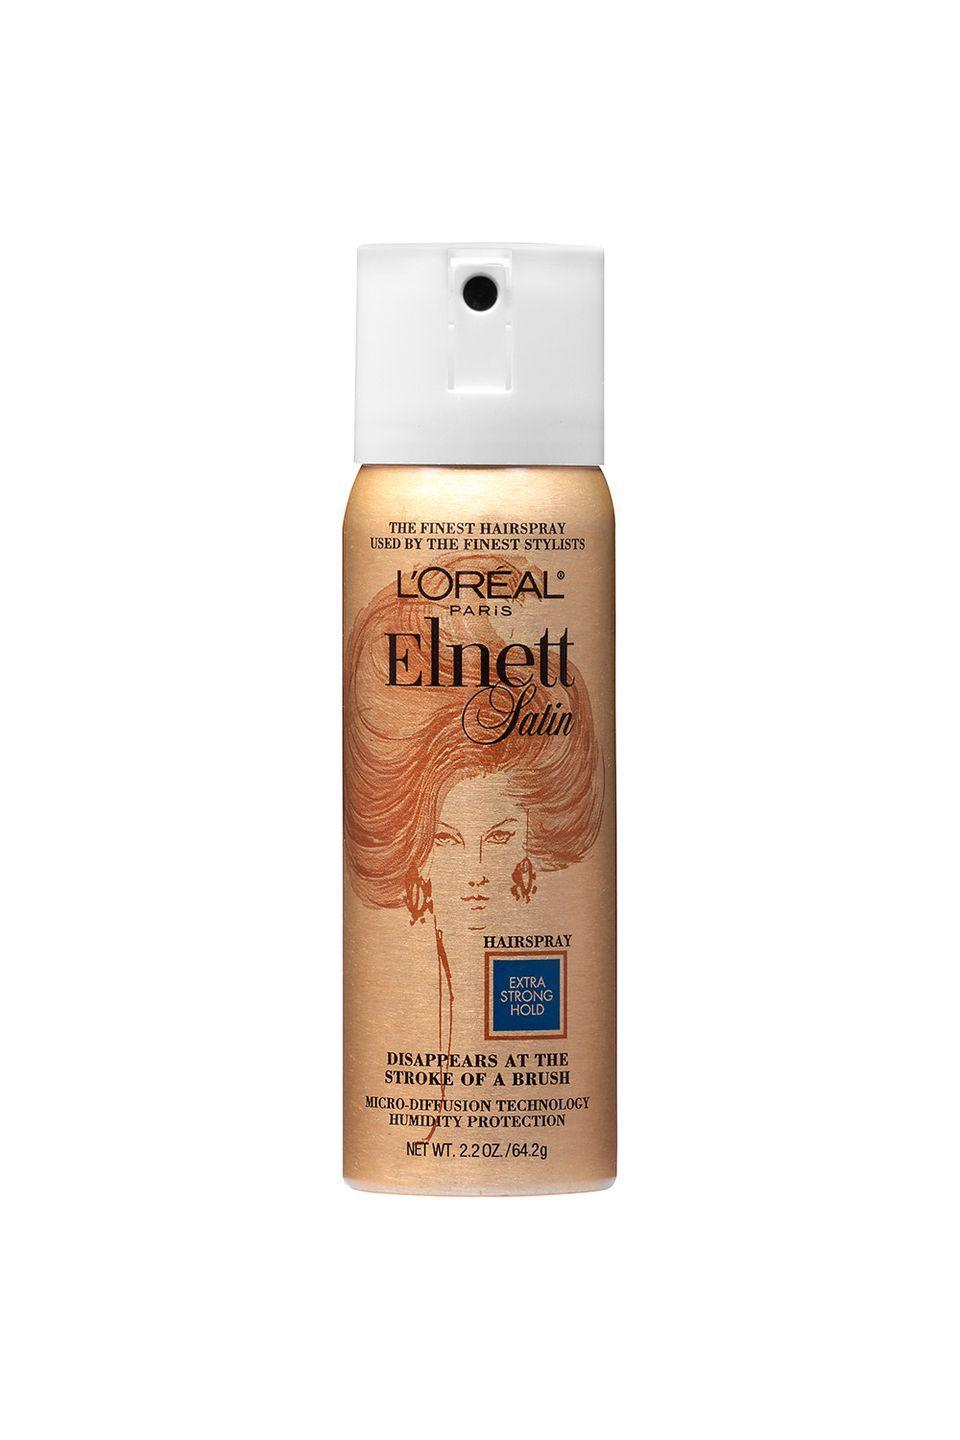 """<p>Touch up after practice, or before your school picture. </p><p>L'Oréal Paris Mini Elnett Satin Extra Strong Hold Hairspray, $6, <a href=""""https://www.walgreens.com/store/c/l'oreal-paris-elnett-satin-hairspray-travel-size-extra-strong-hold/ID=prod6012385-product"""" rel=""""nofollow noopener"""" target=""""_blank"""" data-ylk=""""slk:walgreens.com"""" class=""""link rapid-noclick-resp"""">walgreens.com</a></p>"""